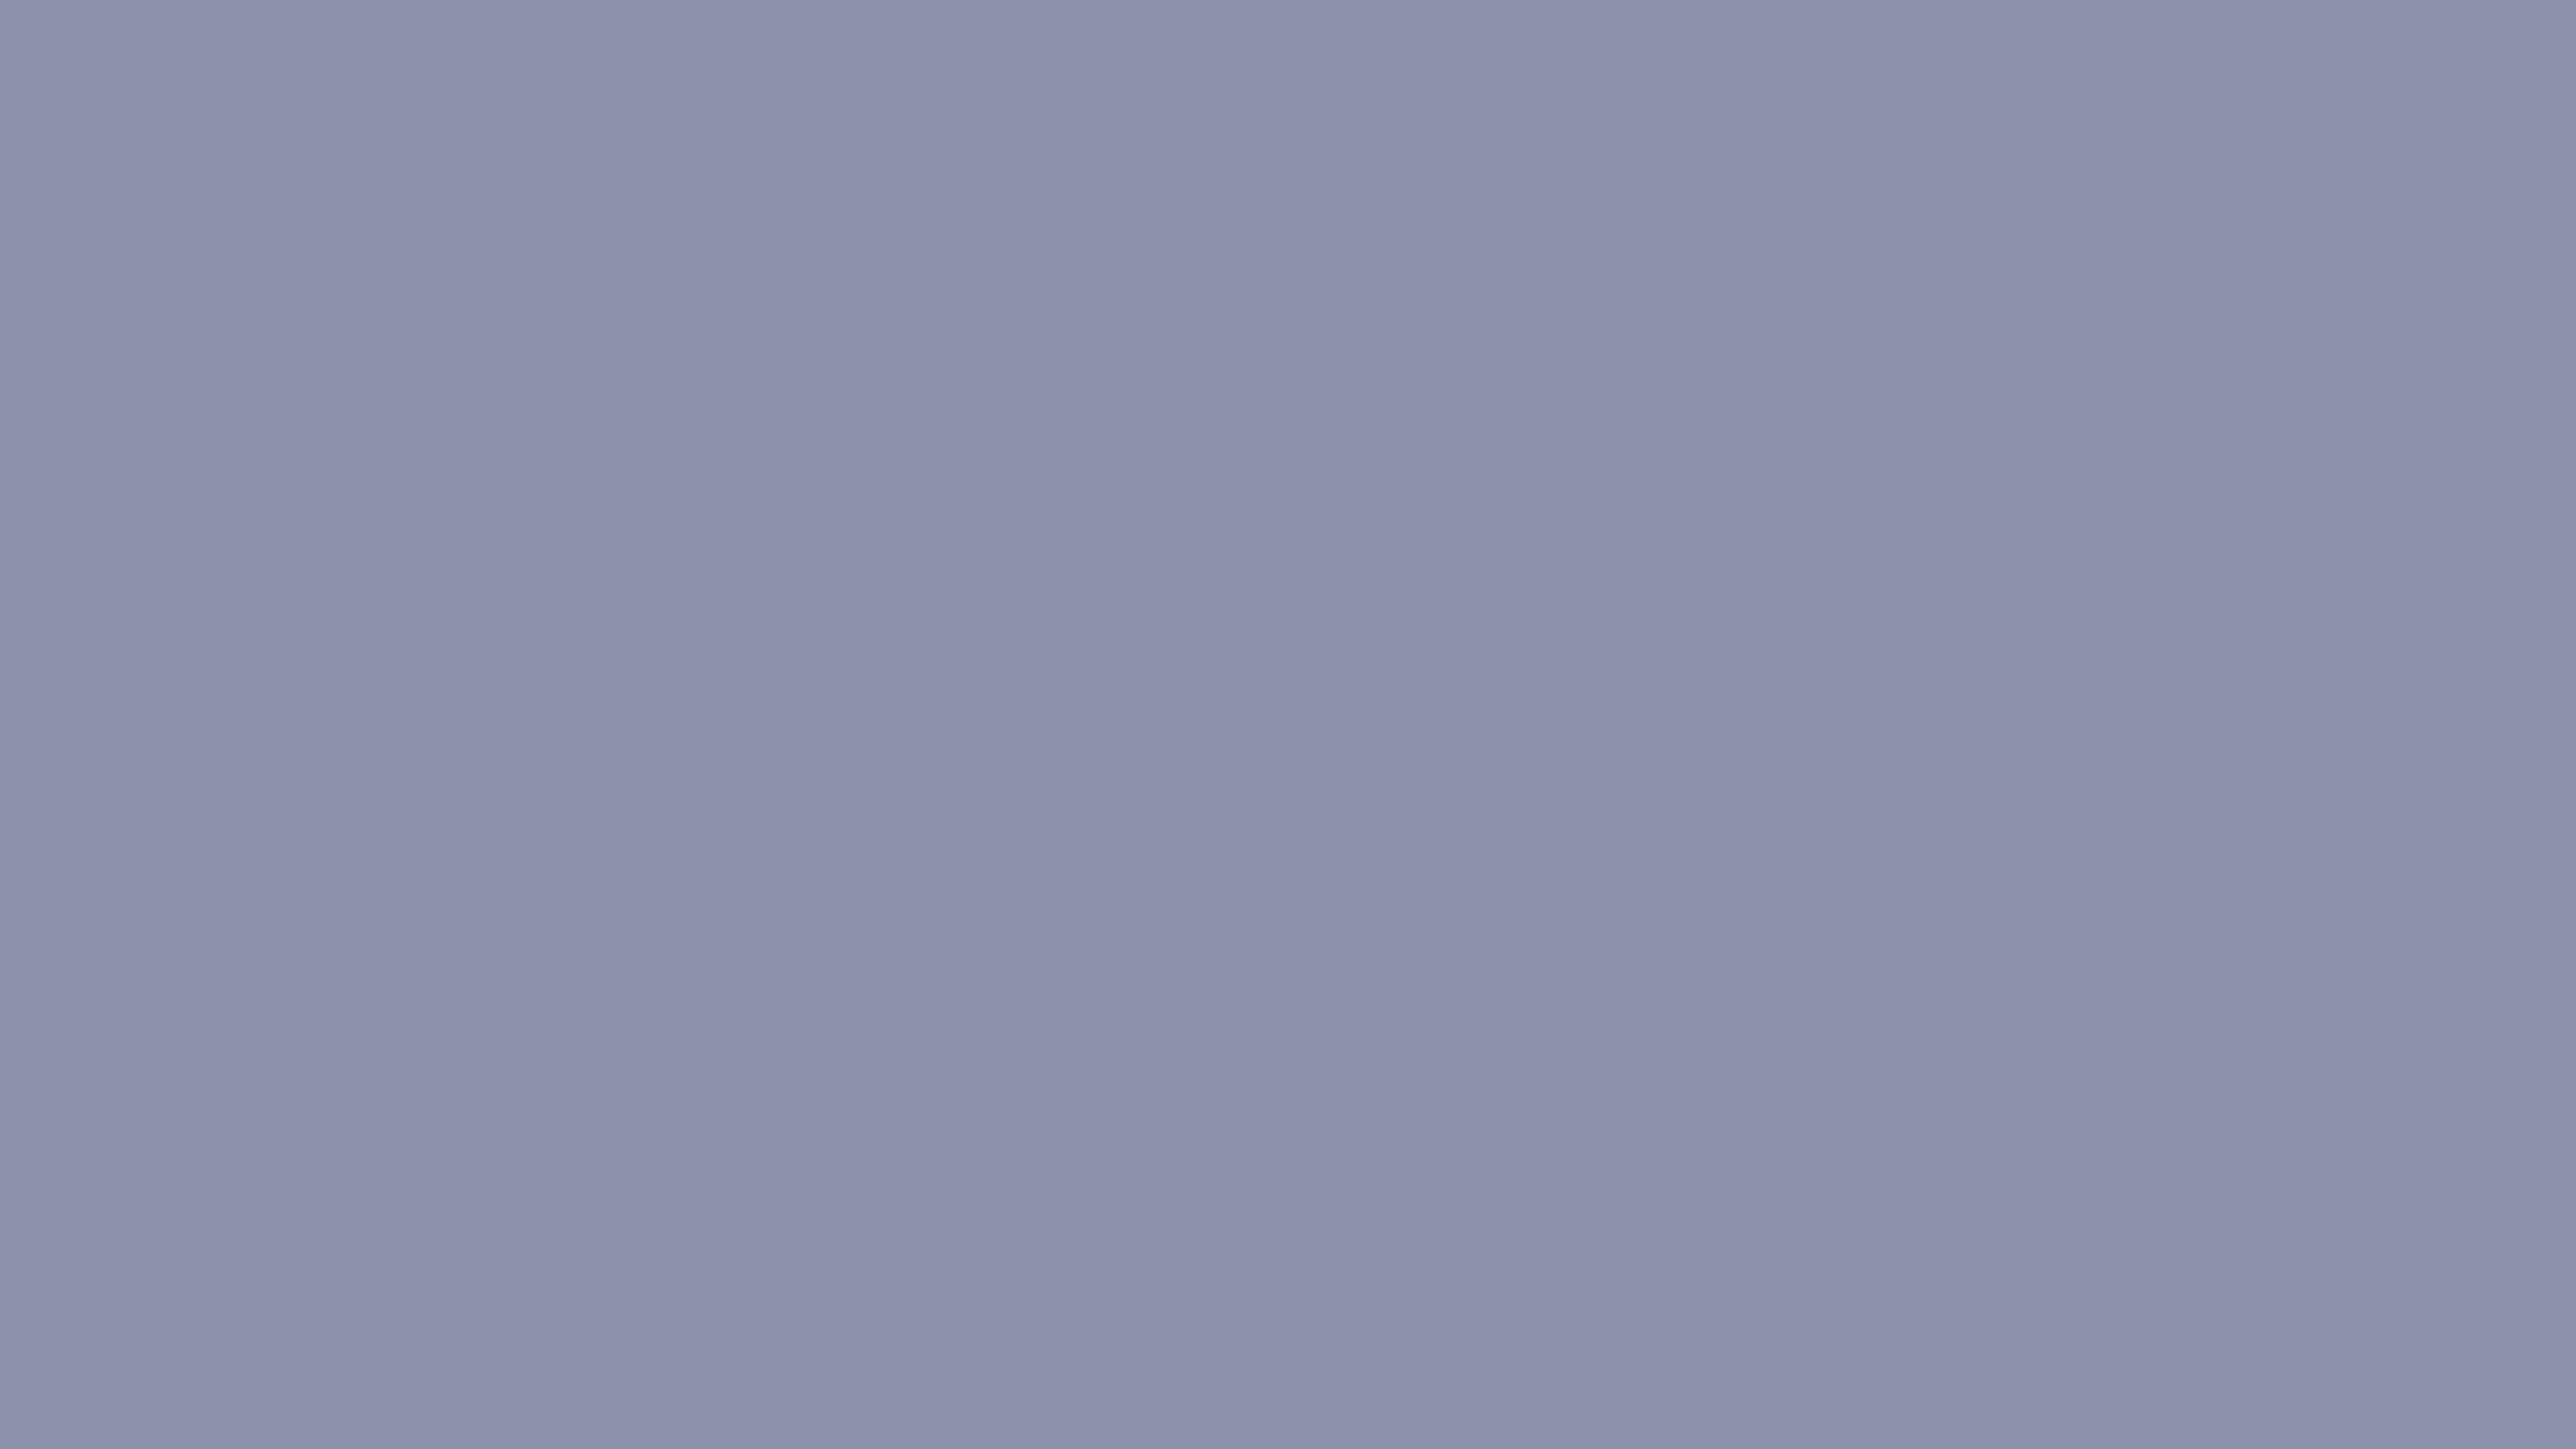 4096x2304 Cool Grey Solid Color Background